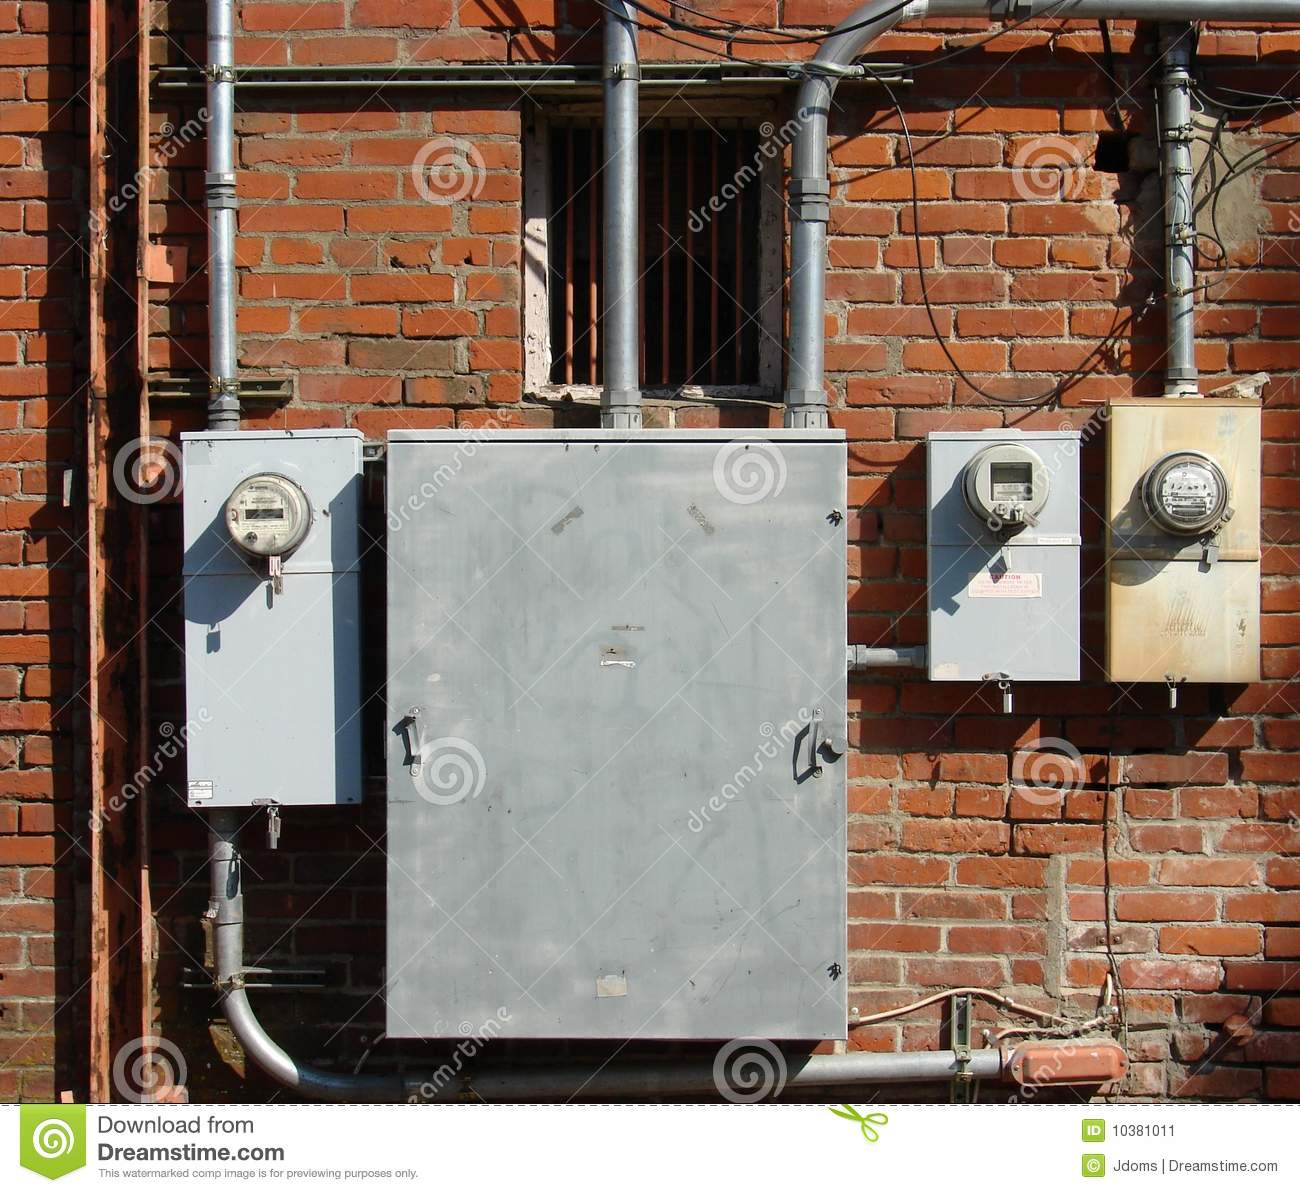 Stock Photo House Electric Light Switch Pulled Wall Box Image1416520 moreover Sight Unseen likewise CircuitBreakers further Stock Images Blue Bathroom Icons Set Eps Vector Illustration Image32464634 as well Royalty Free Stock Photo Laying Gas Water Pipes Image25994635. on house wiring a to z